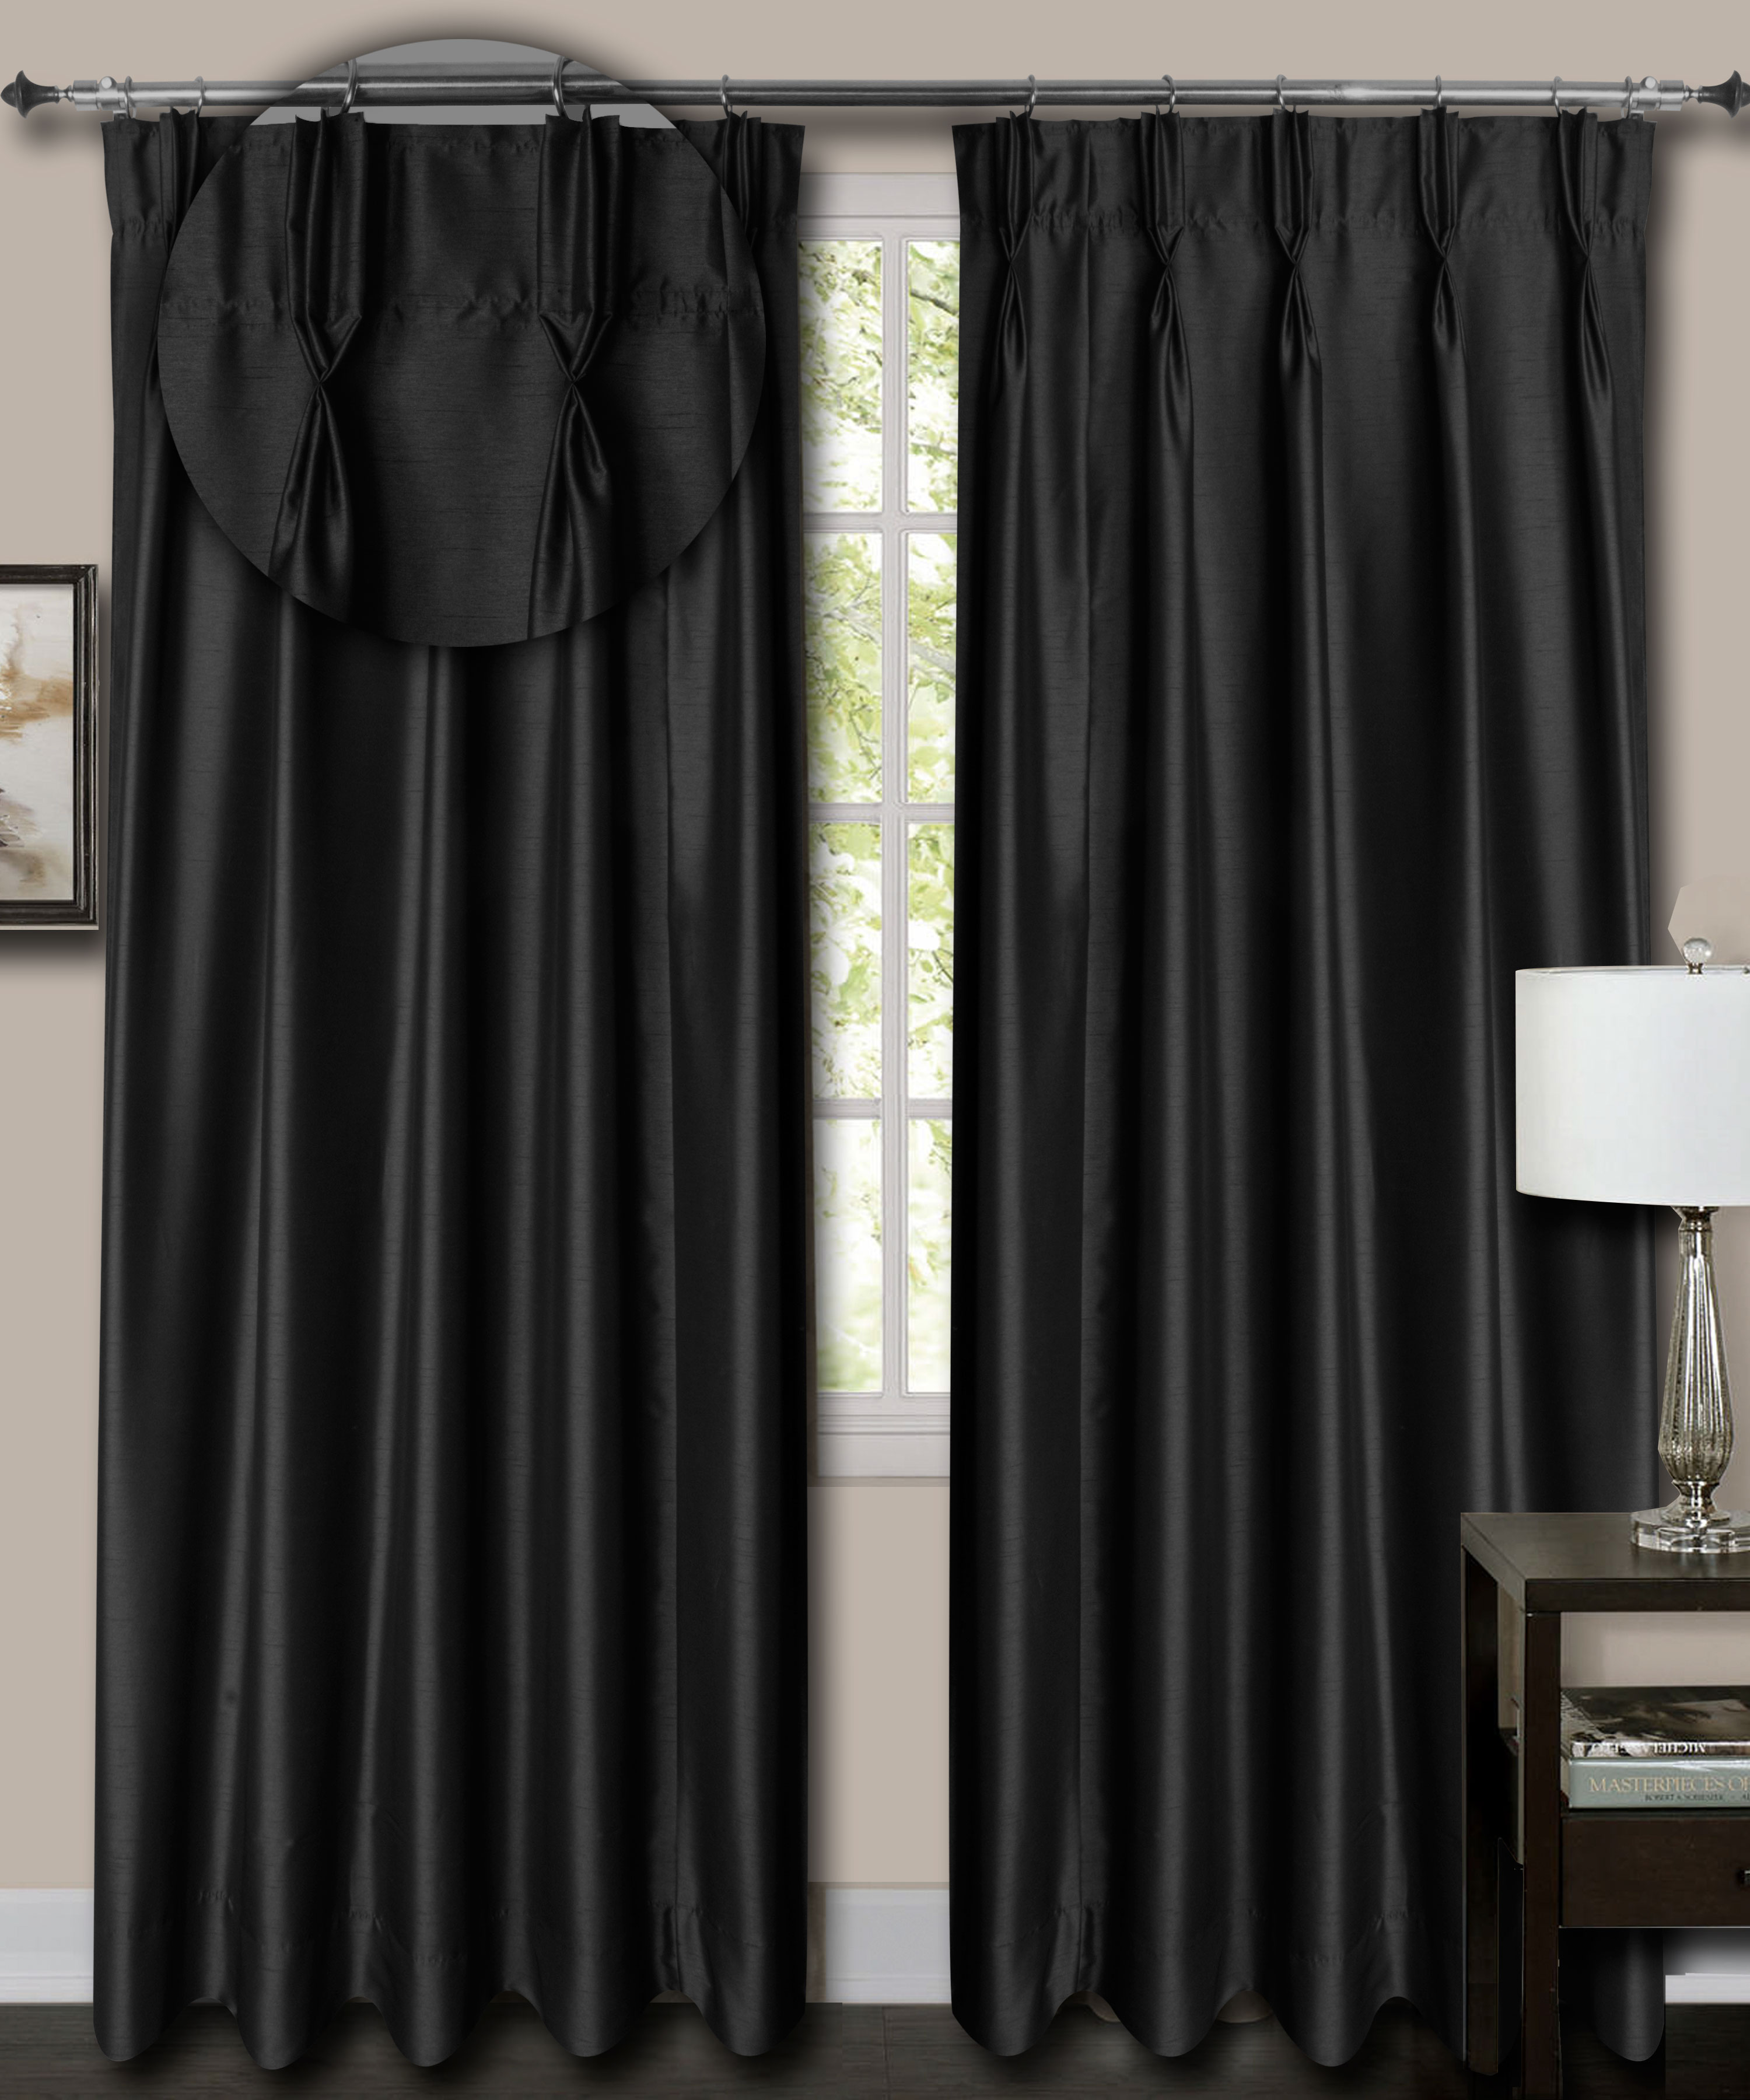 """French Pleat Top Black Faux Silk Dupioni Curtains. (52"""" Wide,5 Feet Long,Blackout Lining)"""